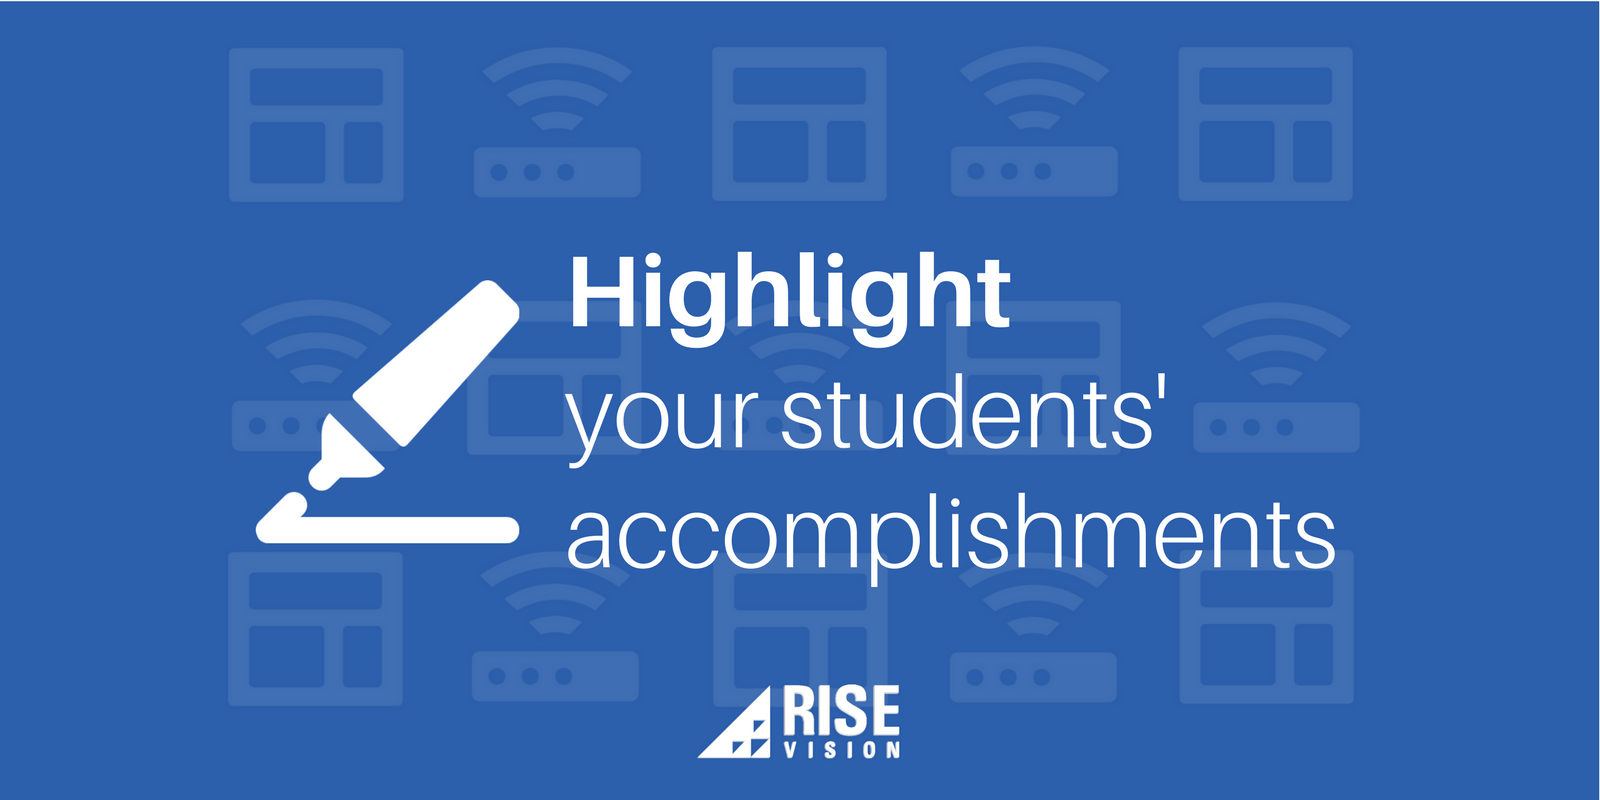 Rise Vision Digital Signage Education Students Accomplishments.png